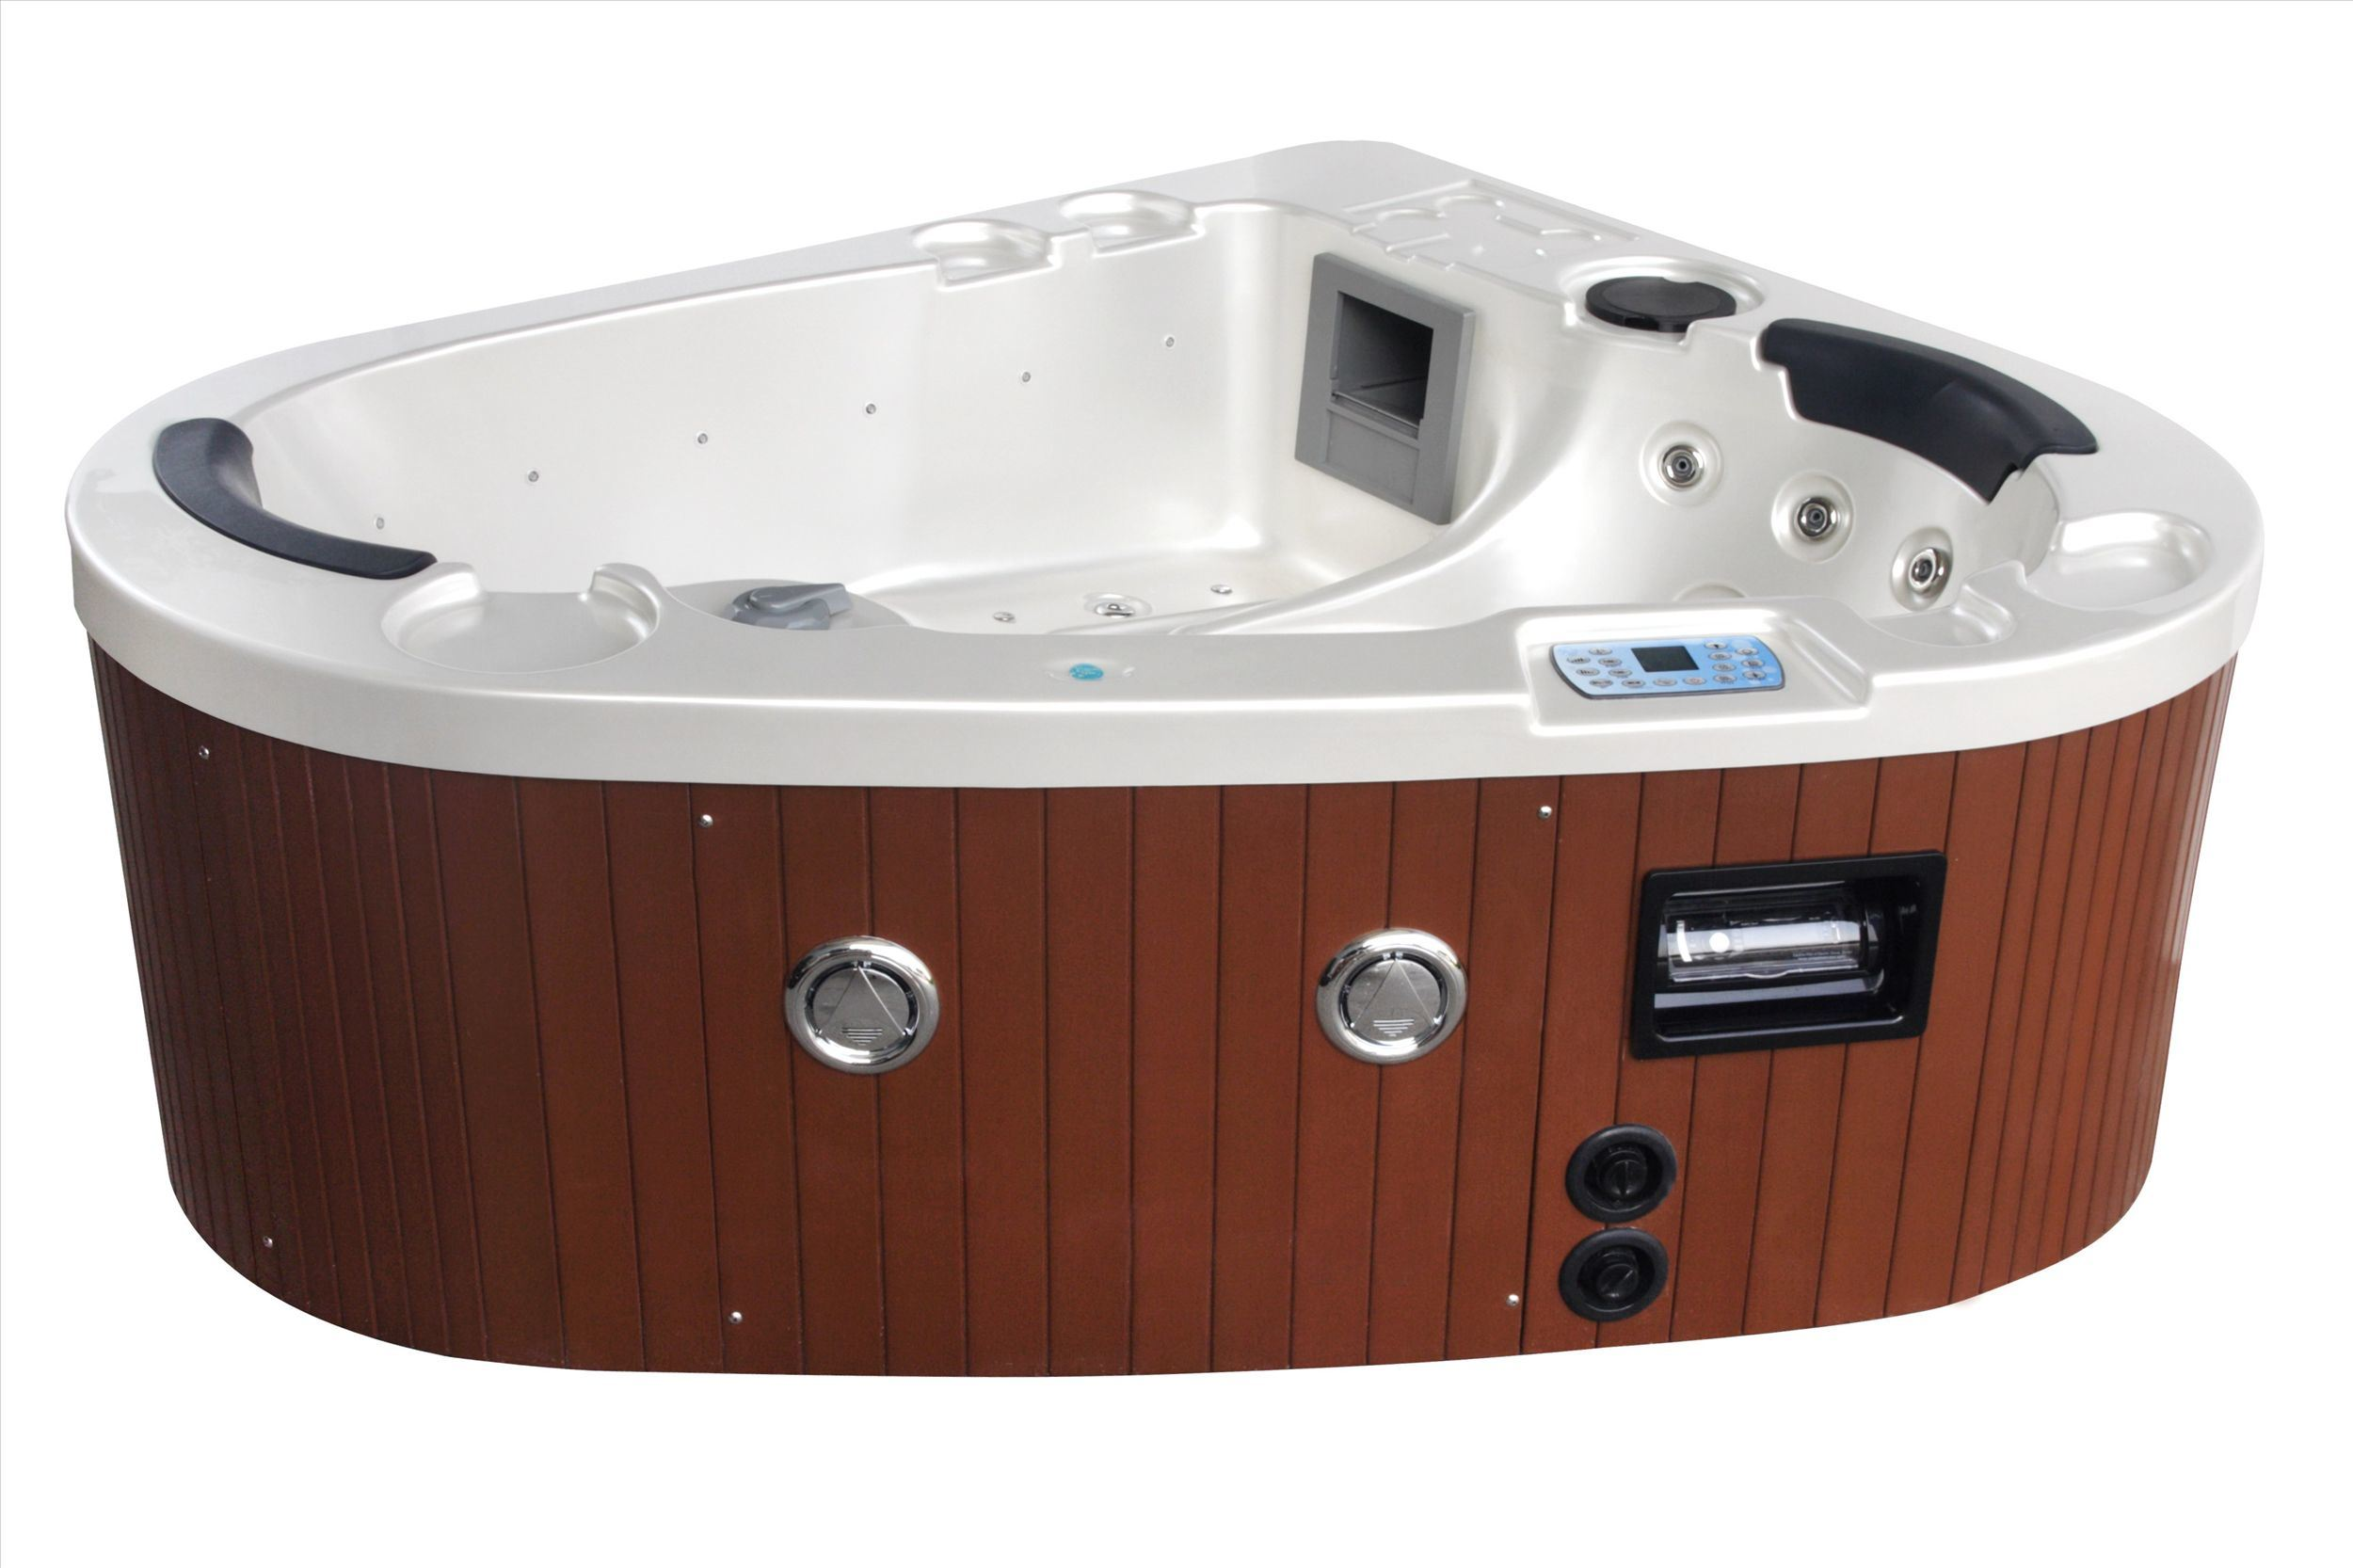 China Monalisa Luxury Outdoor Hot Tub for 2 Persons M-3358 - China ...